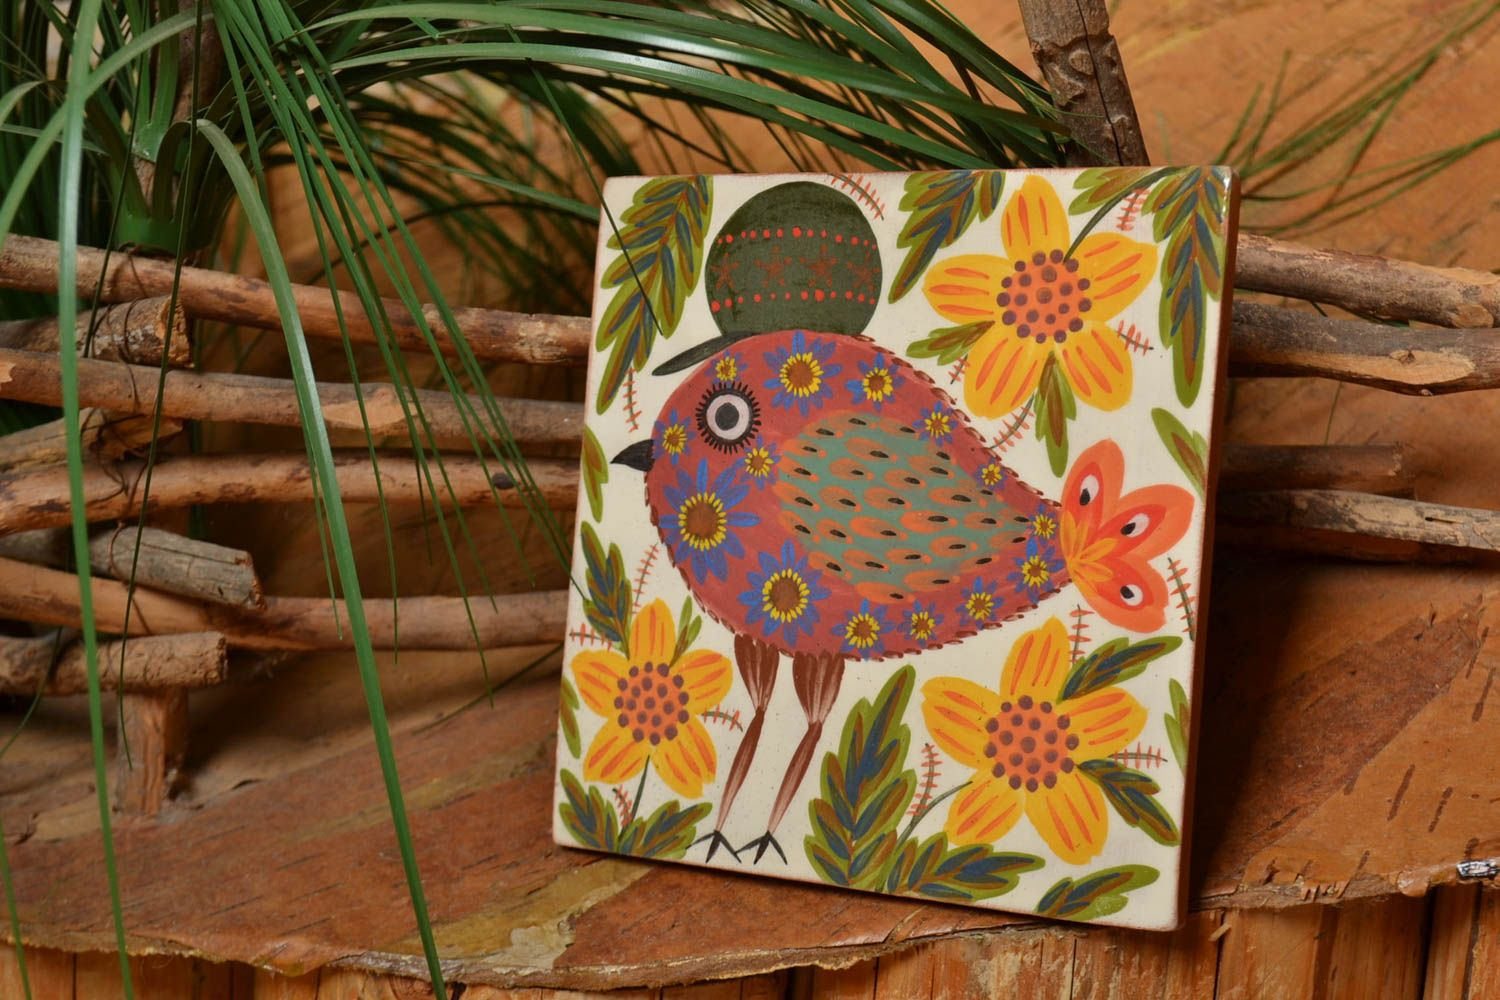 decorative handmade tiles Handmade designer ceramic facing tile painted brightly with natural dyes engobes - MADEheart.com